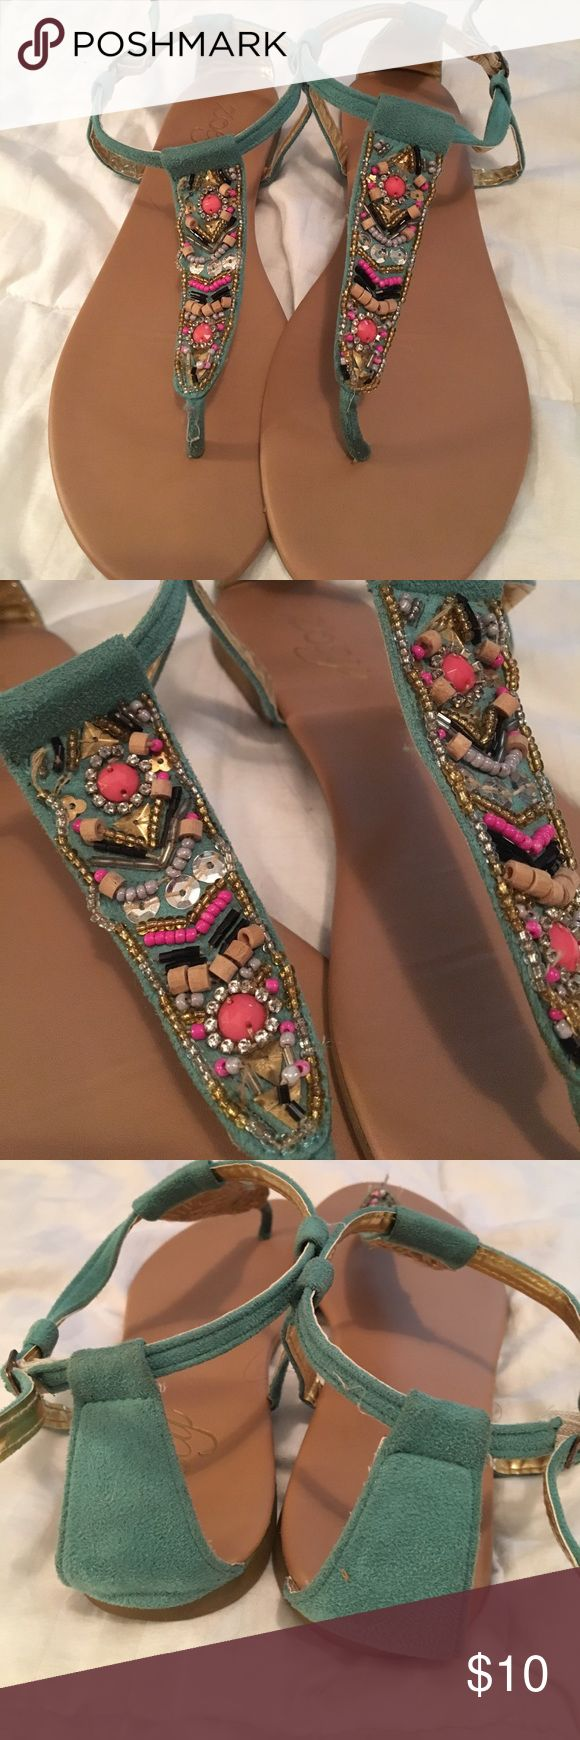 Sandals Really cute teal sandals with beaded design! Only worn once! Shoes Sandals